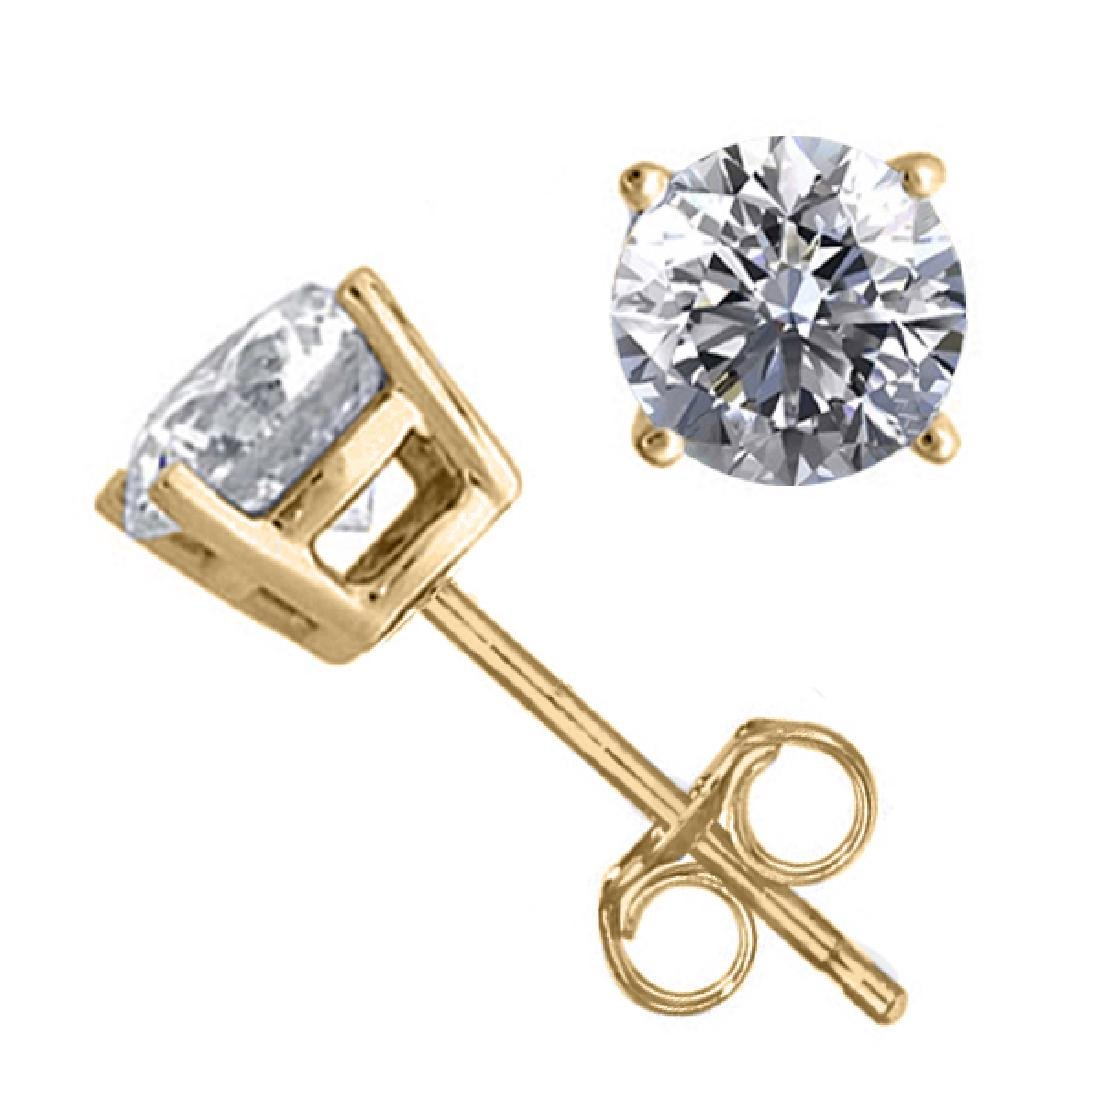 14K Yellow Gold Jewelry 1.52 ctw Natural Diamond Stud